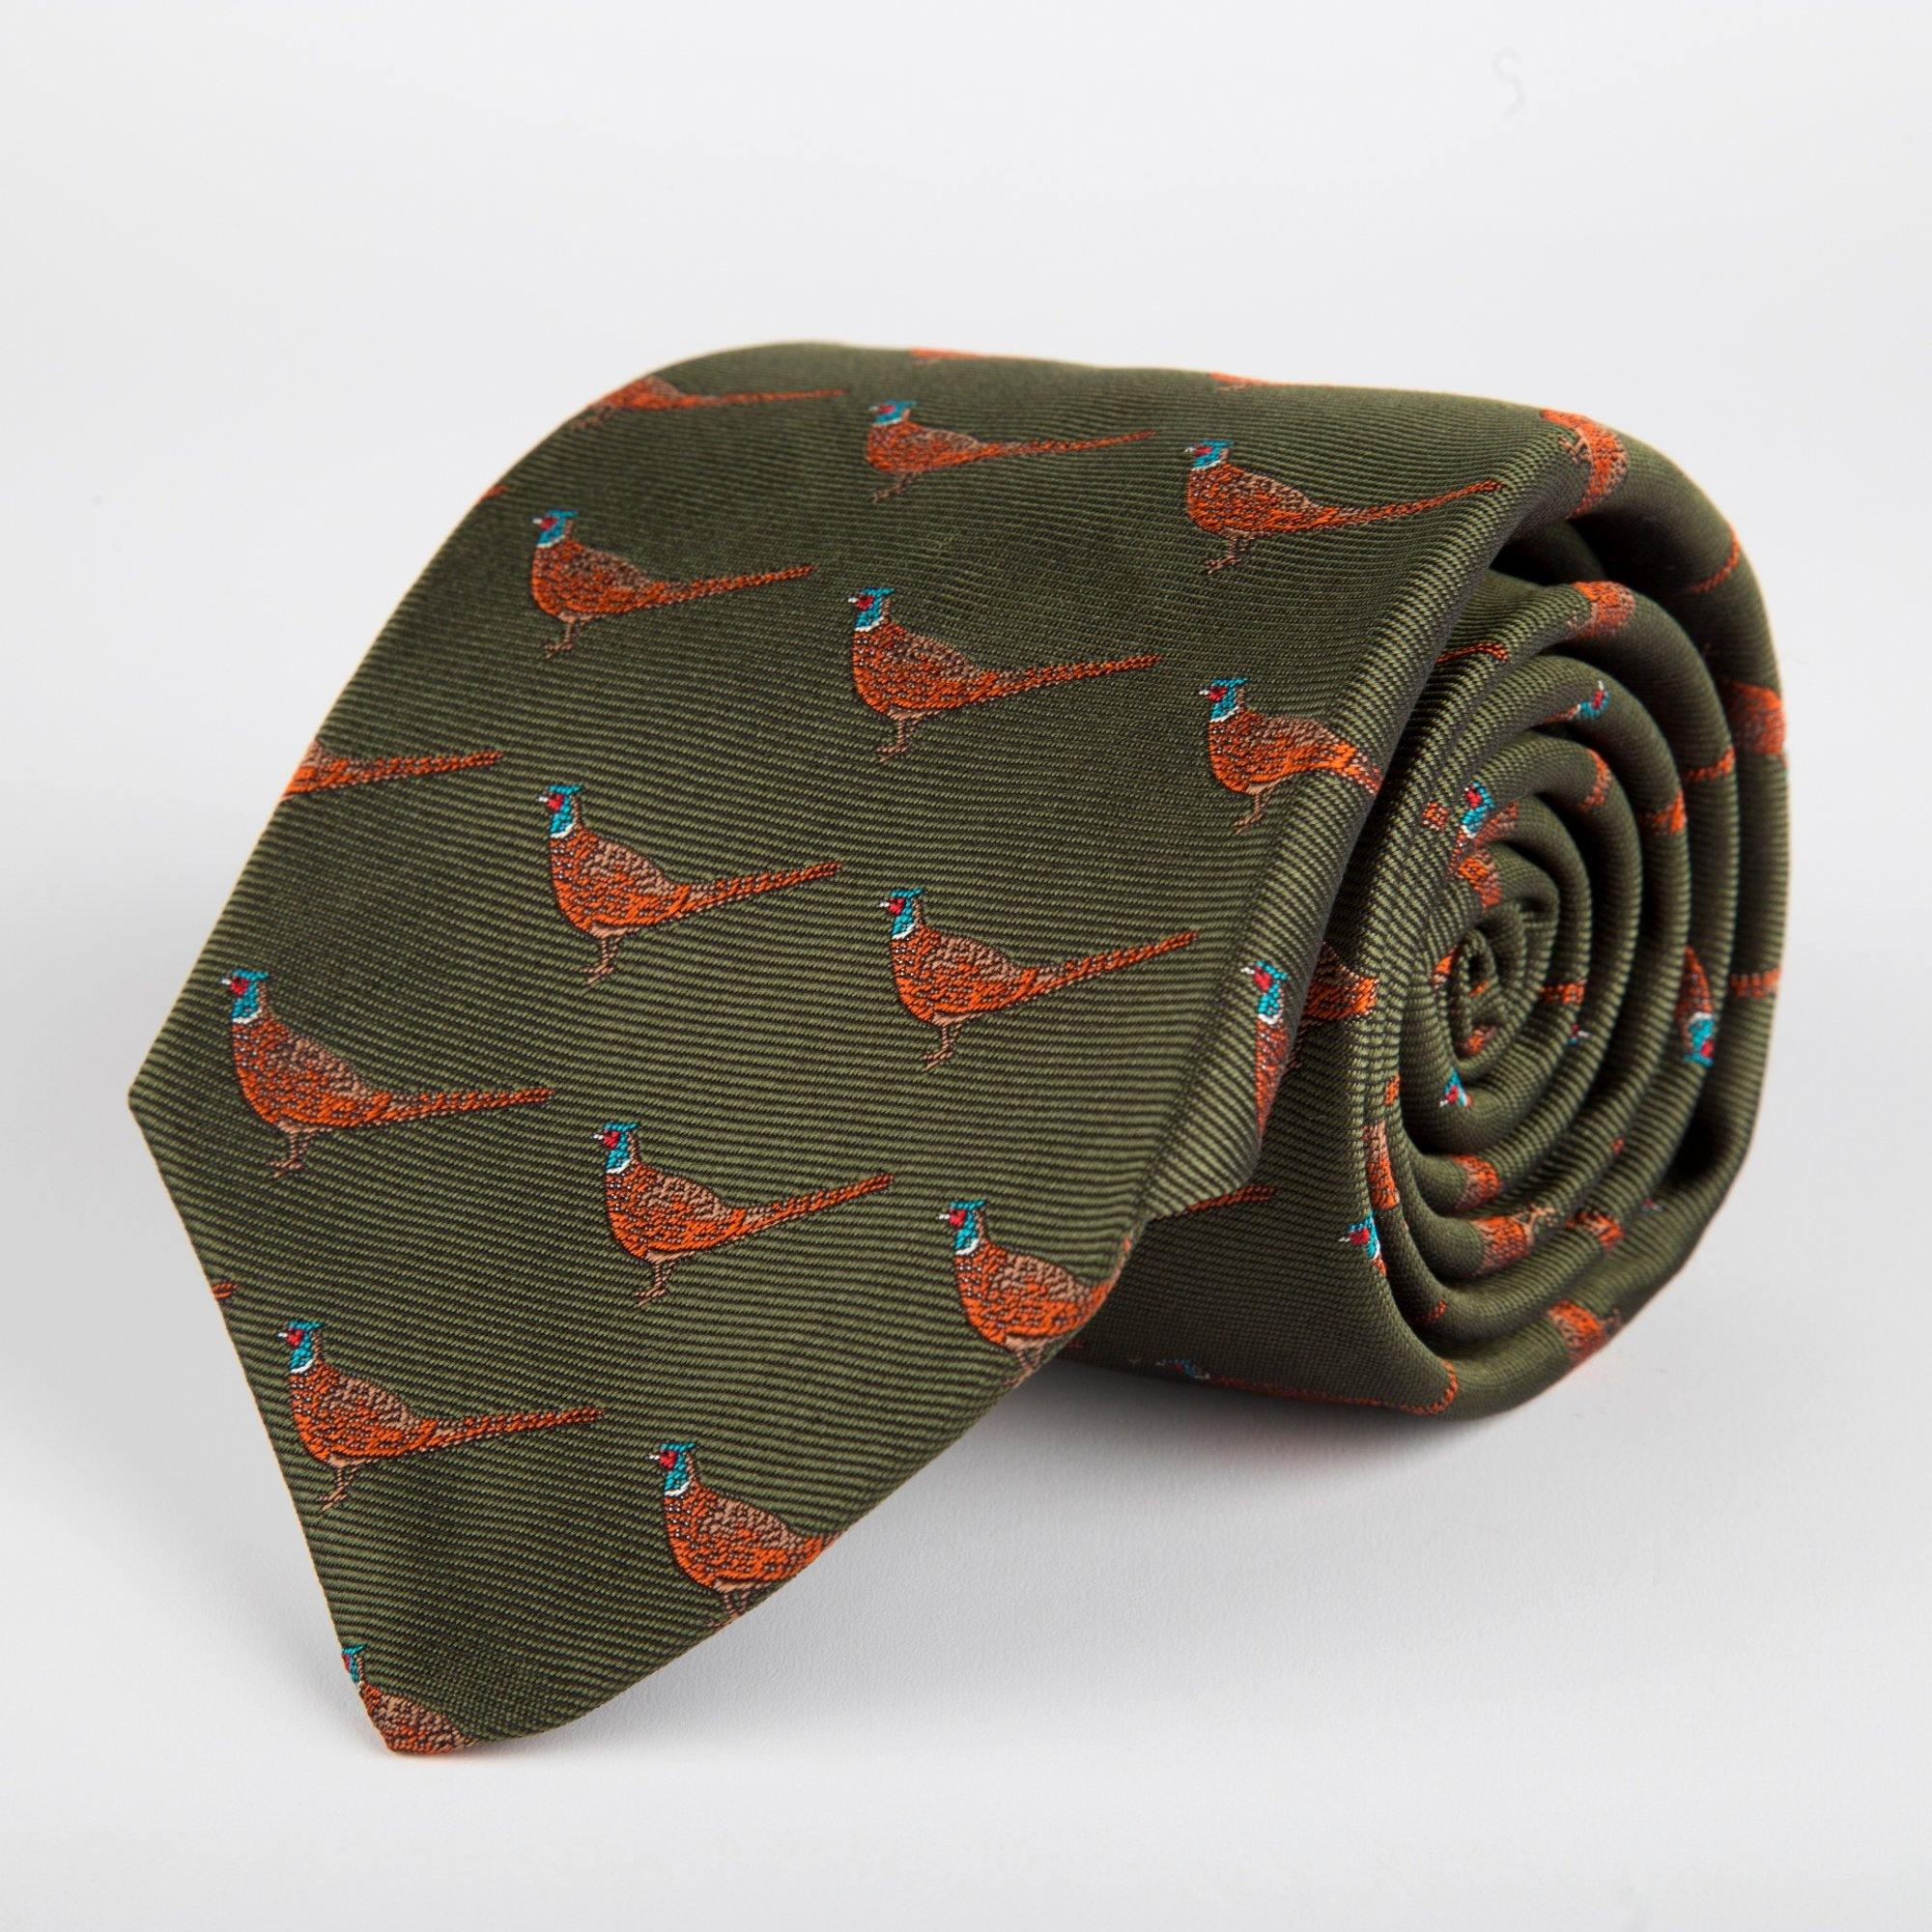 Green Pheasant Woven Silk Tie Hand Finished - British Made